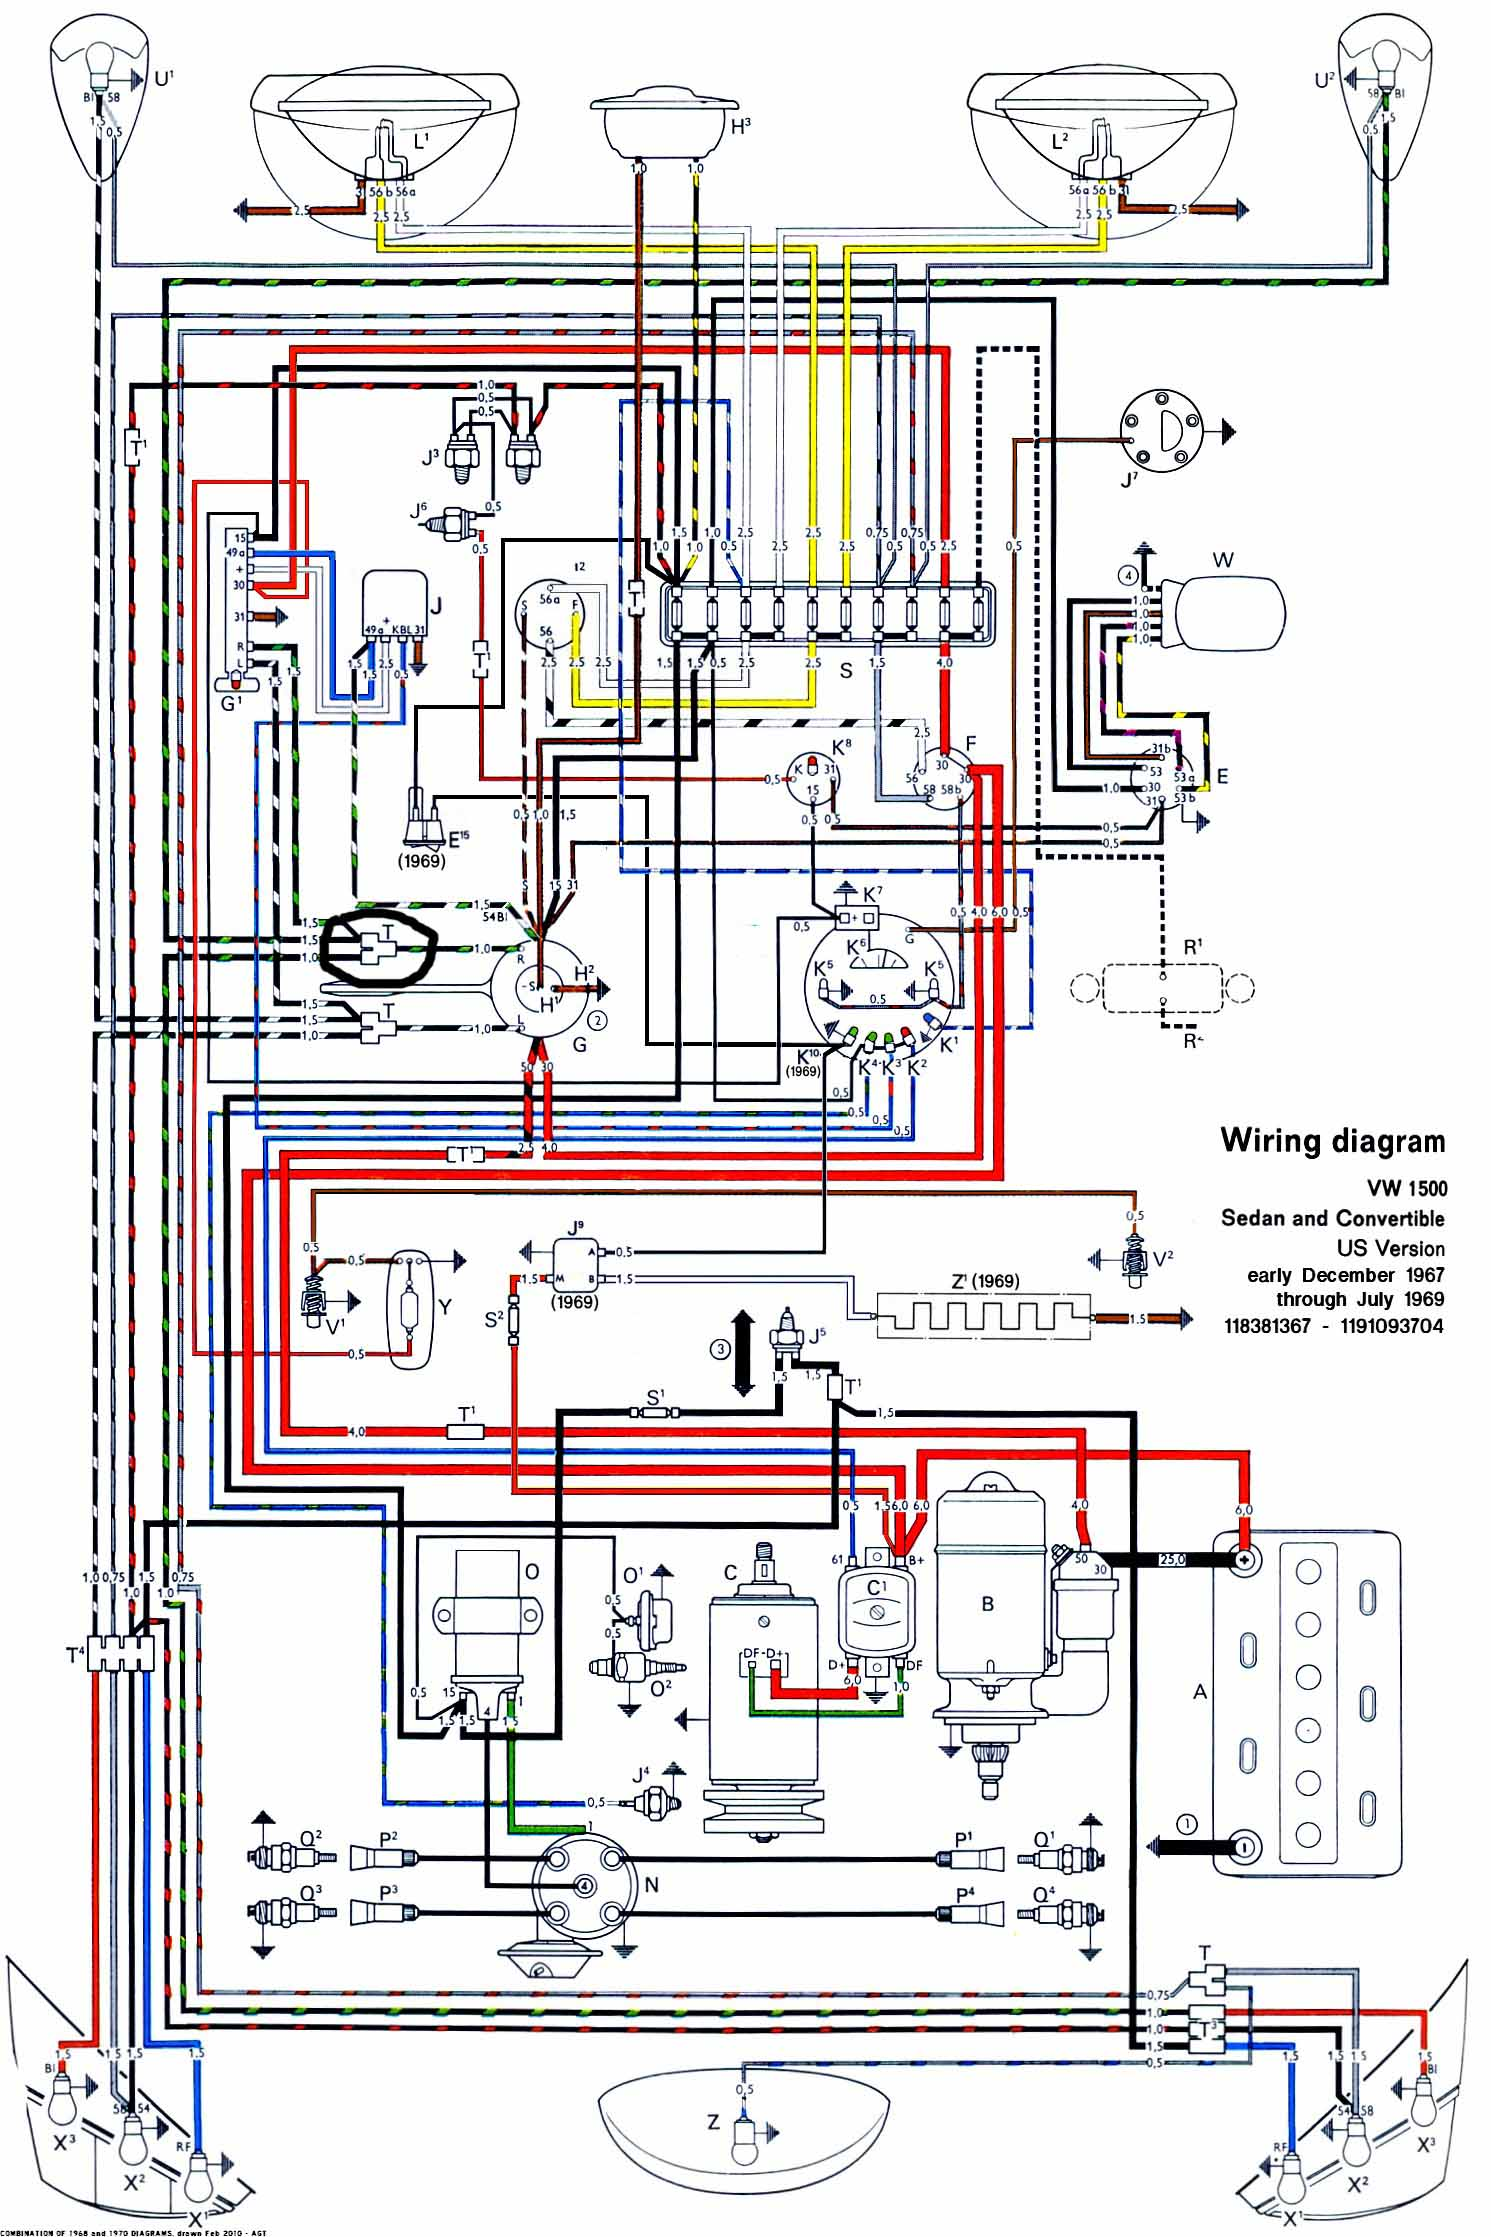 Vw Beetle Wiring Diagram 1971 Rd Diagrams 1974 Engine For The 1969 1973